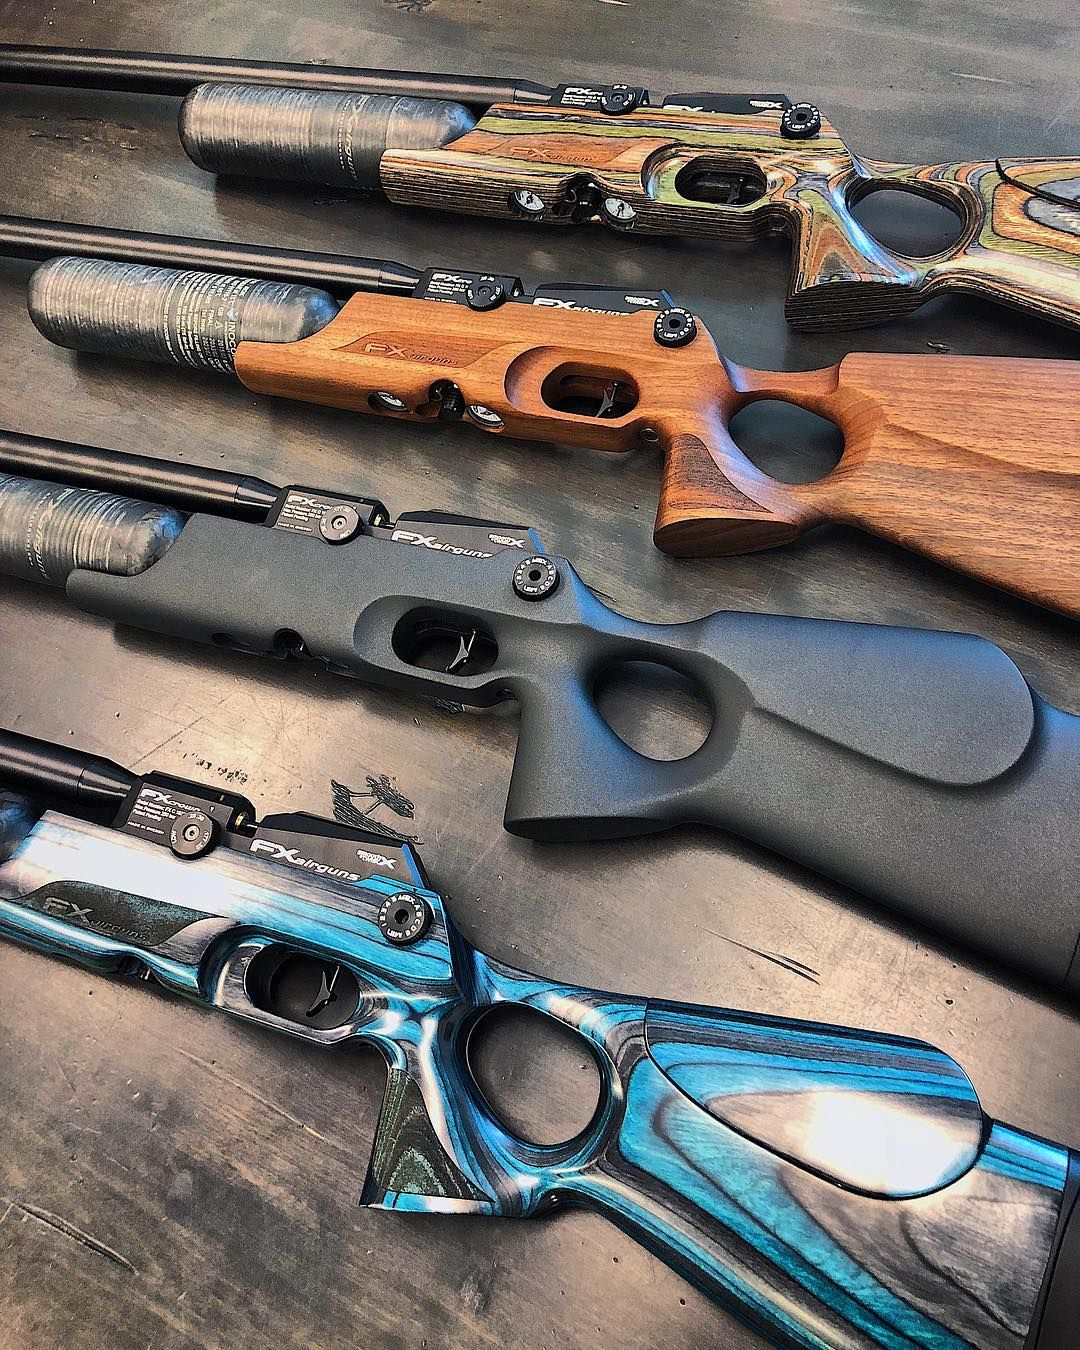 Which stock would you want on your FX Crown??   Green Walnut